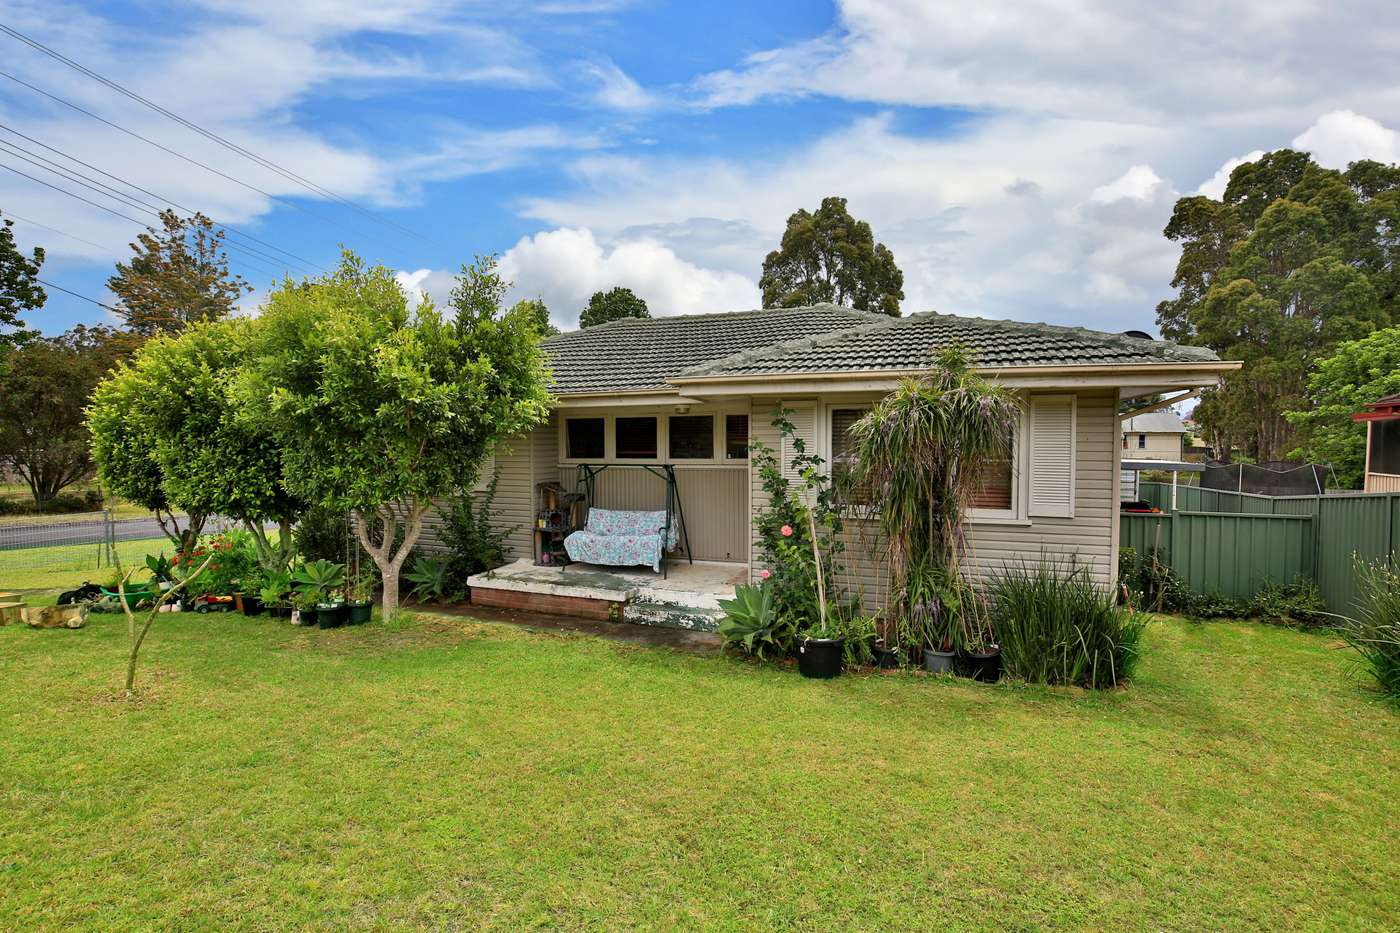 Main view of Homely house listing, 11 Miller Avenue, Nowra, NSW 2541